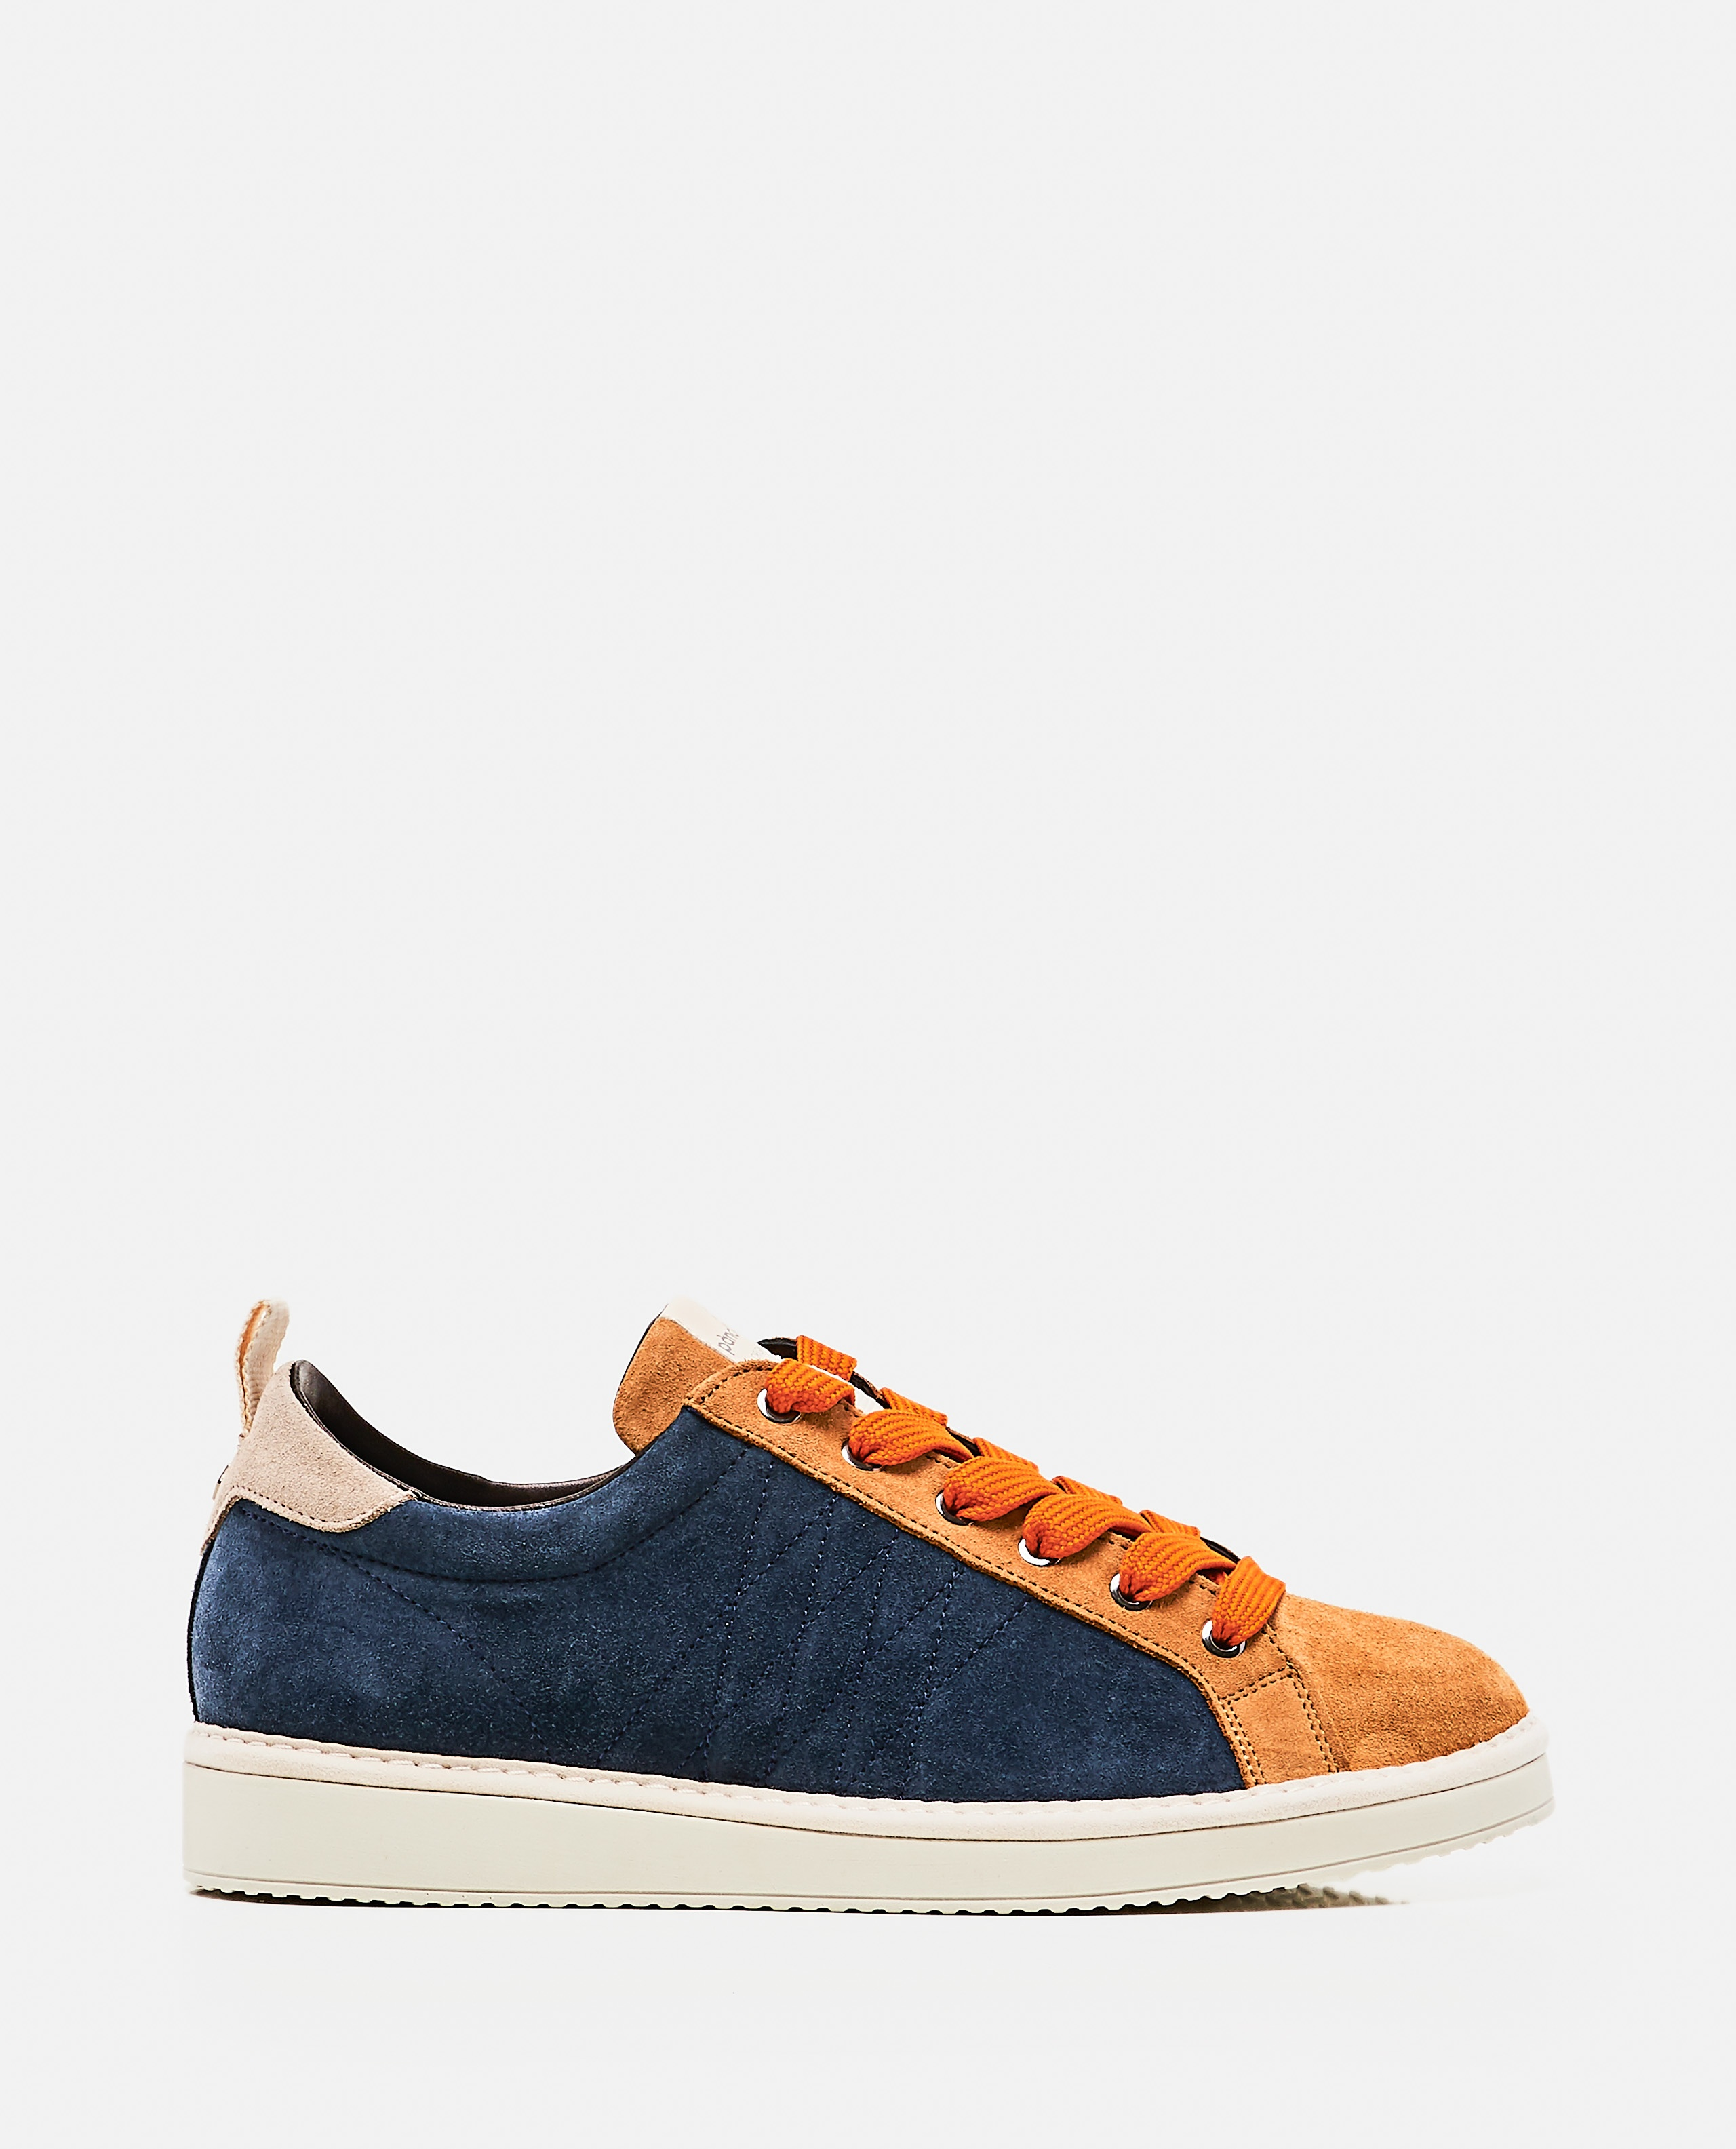 Sneakers in pelle Uomo Panchic 000278450041047 1